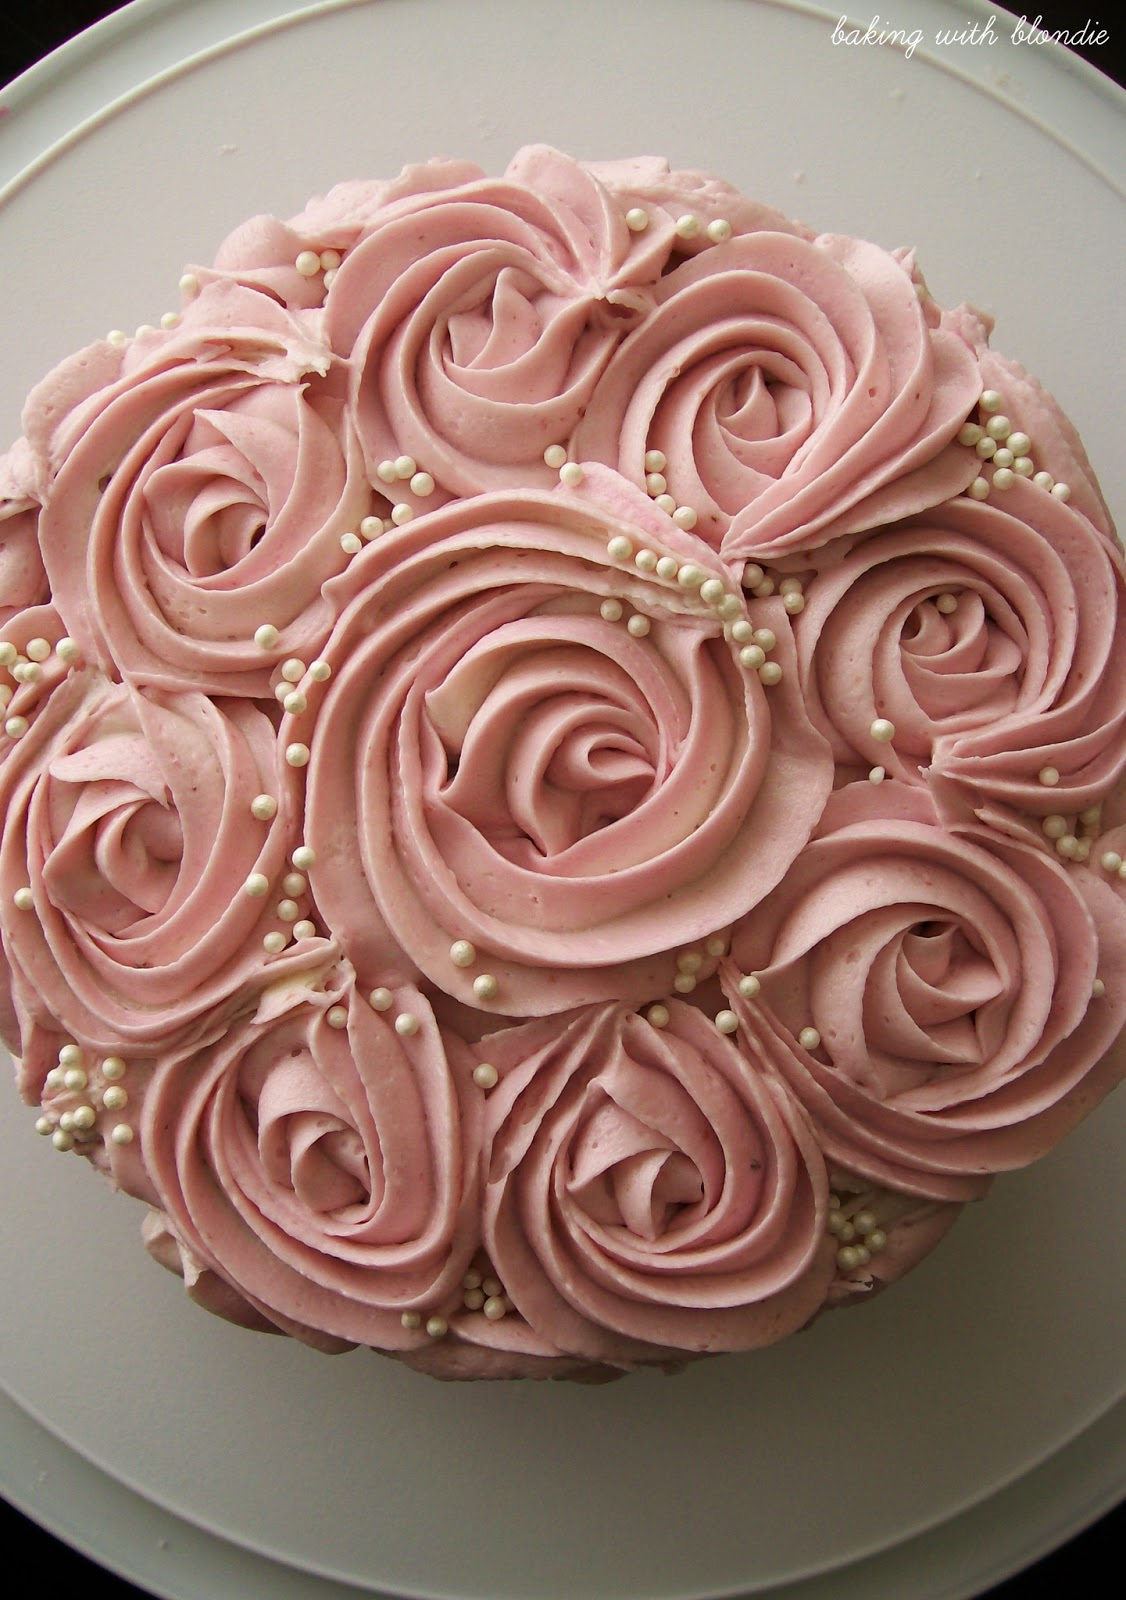 Rose Cake Design Icing : White Chocolate Raspberry Buttercream Frosting Recipe ...